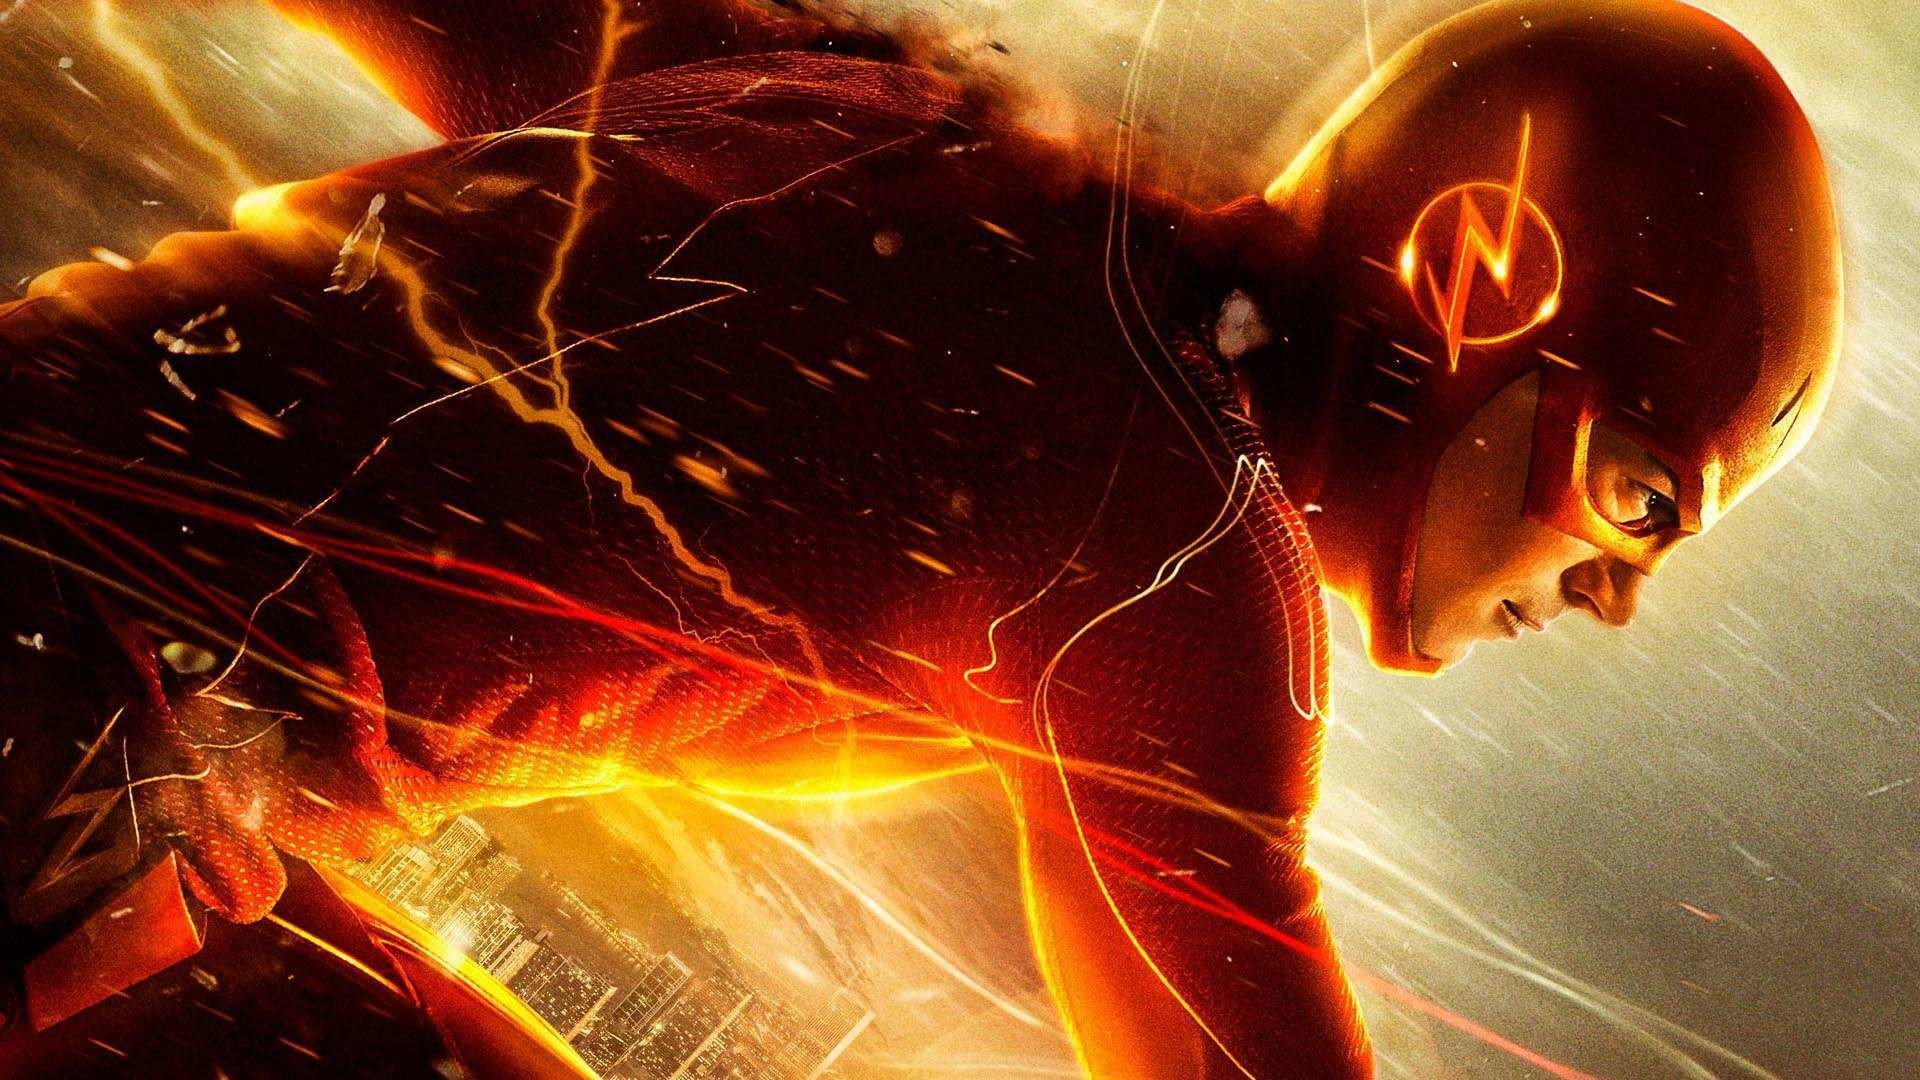 on September 7, 2015 By admin Comments Off on The Flash HD .